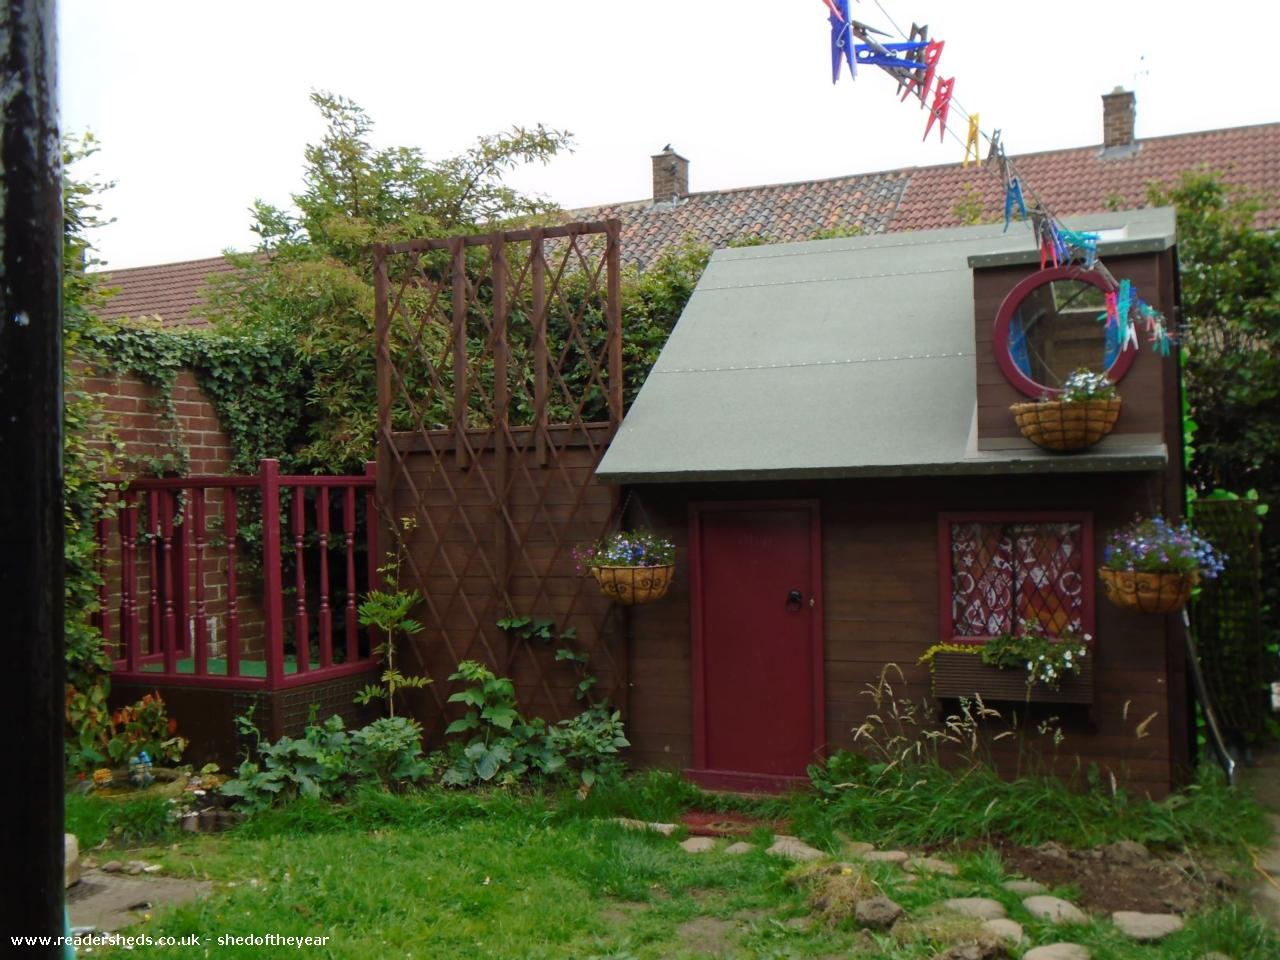 Photo of Ellie's Den, entry to Shed of the year-front